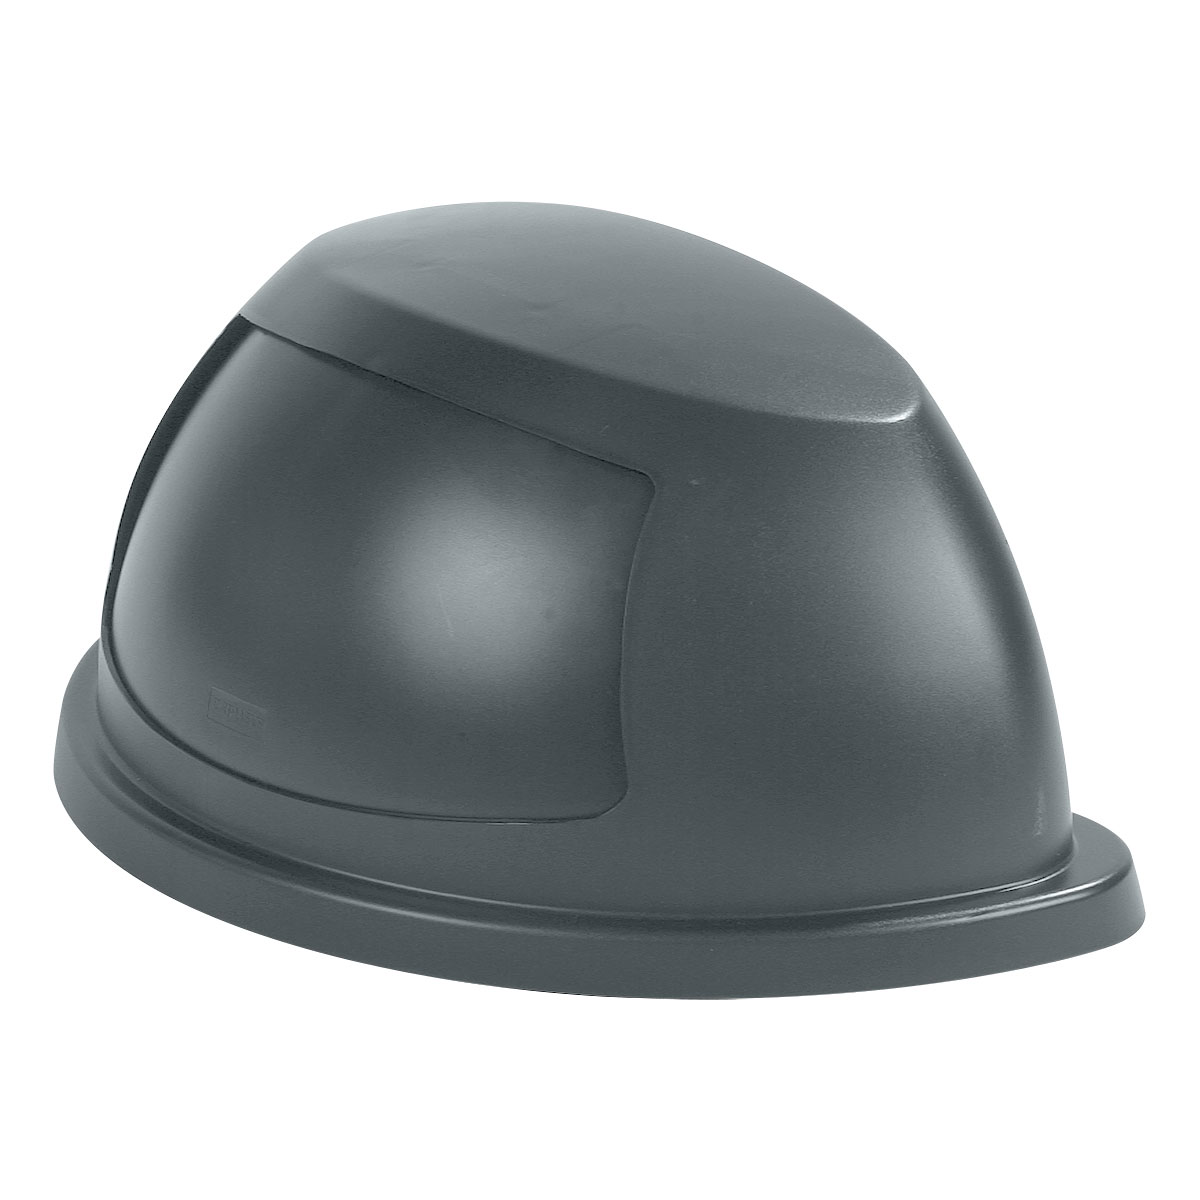 Carlisle 343022-23 21-gal Waste Container Dome Lid - Swing Flap Door, Polyethylene, Gray